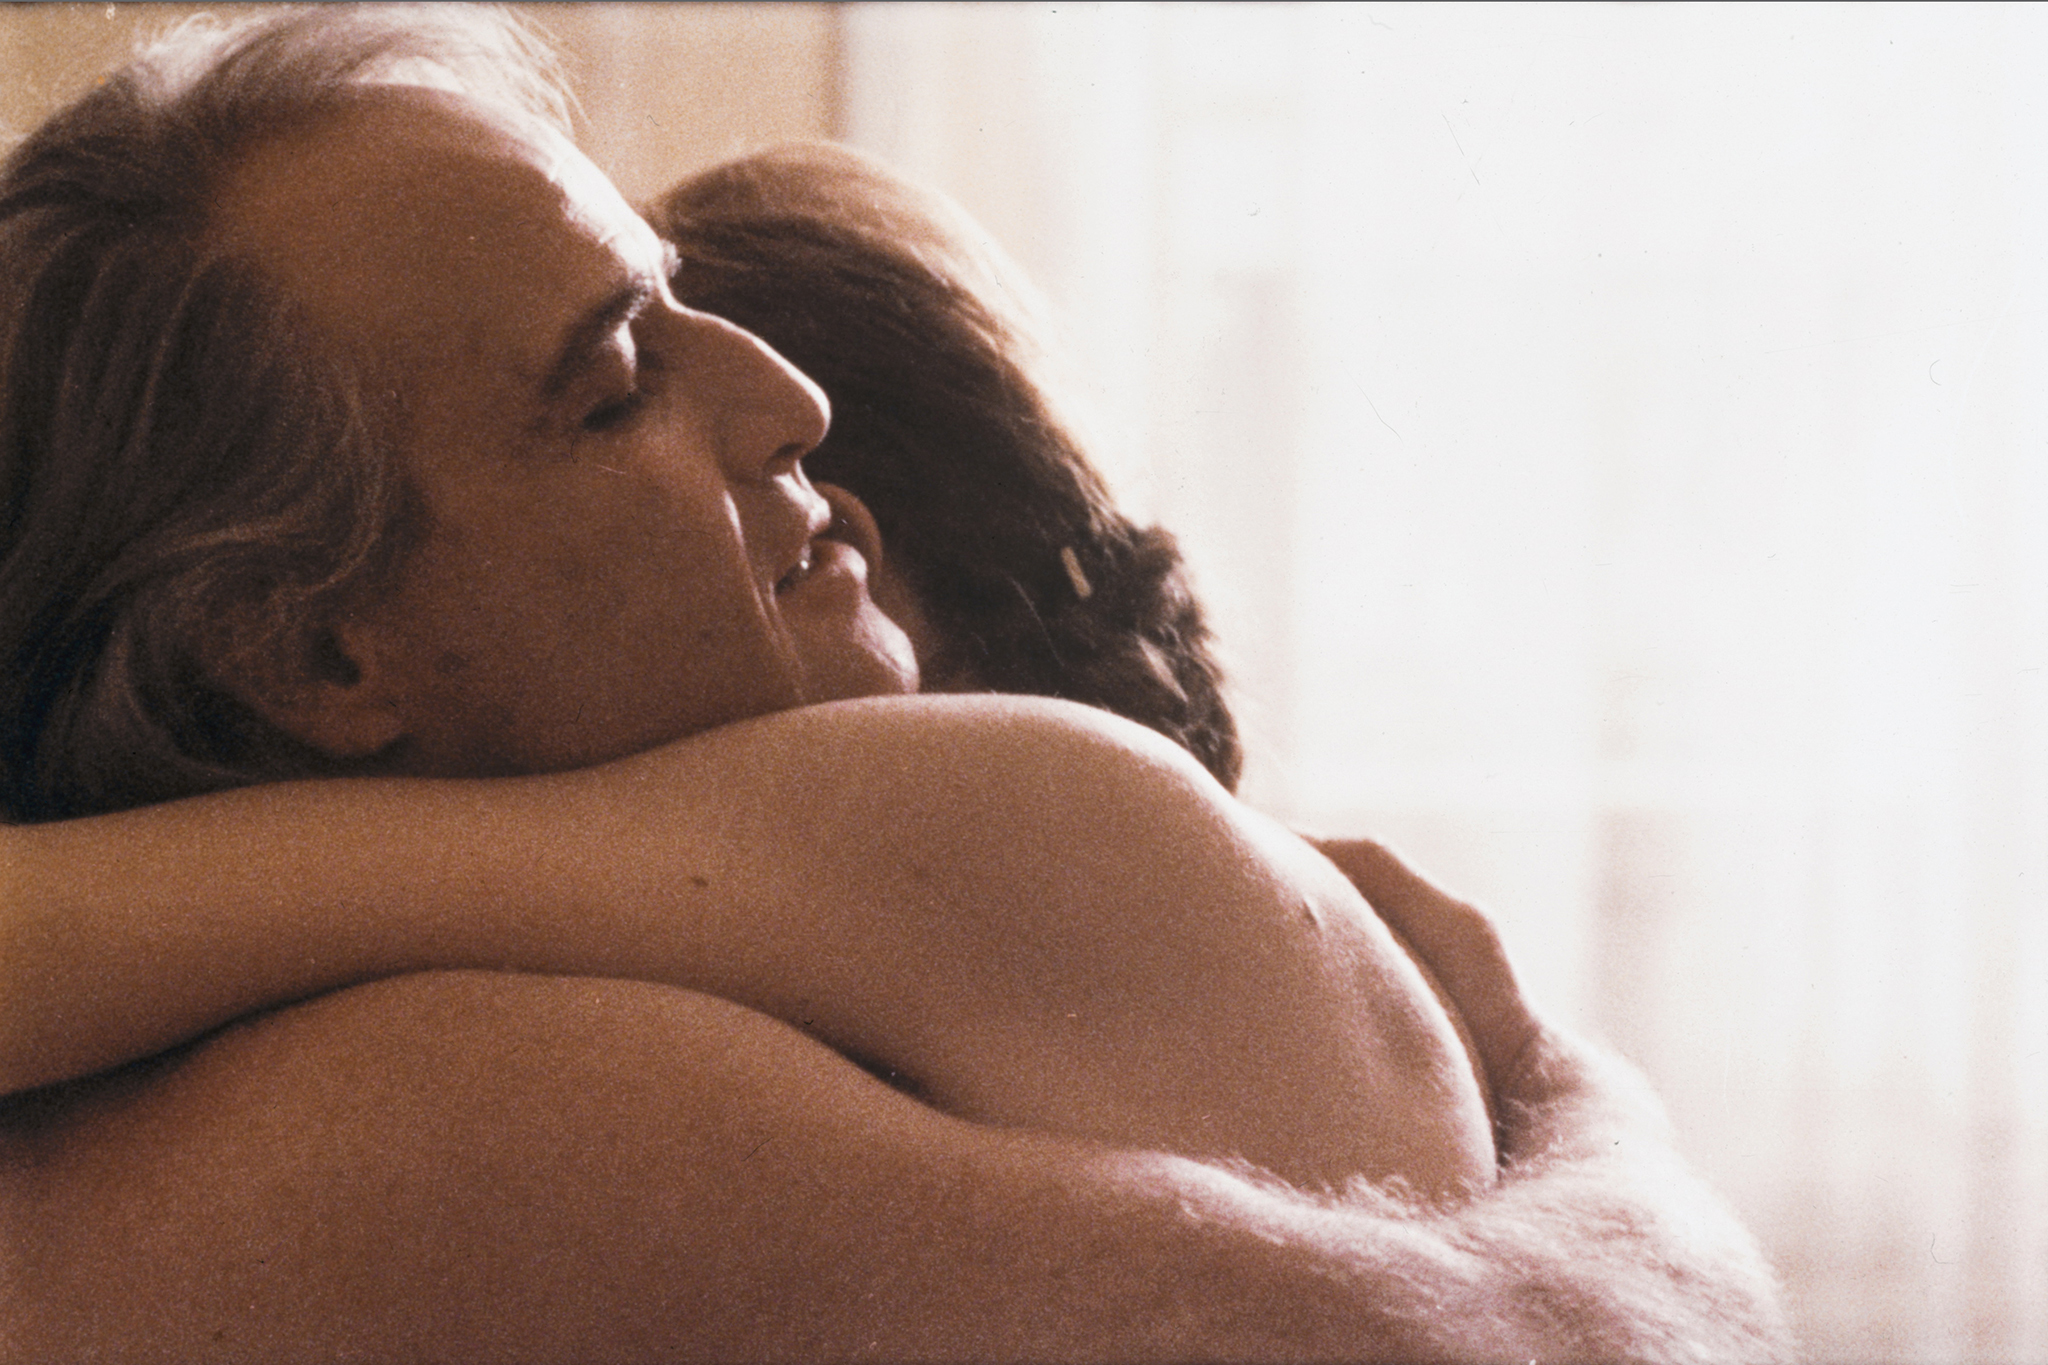 100 sex scenes, Last Tango in Paris